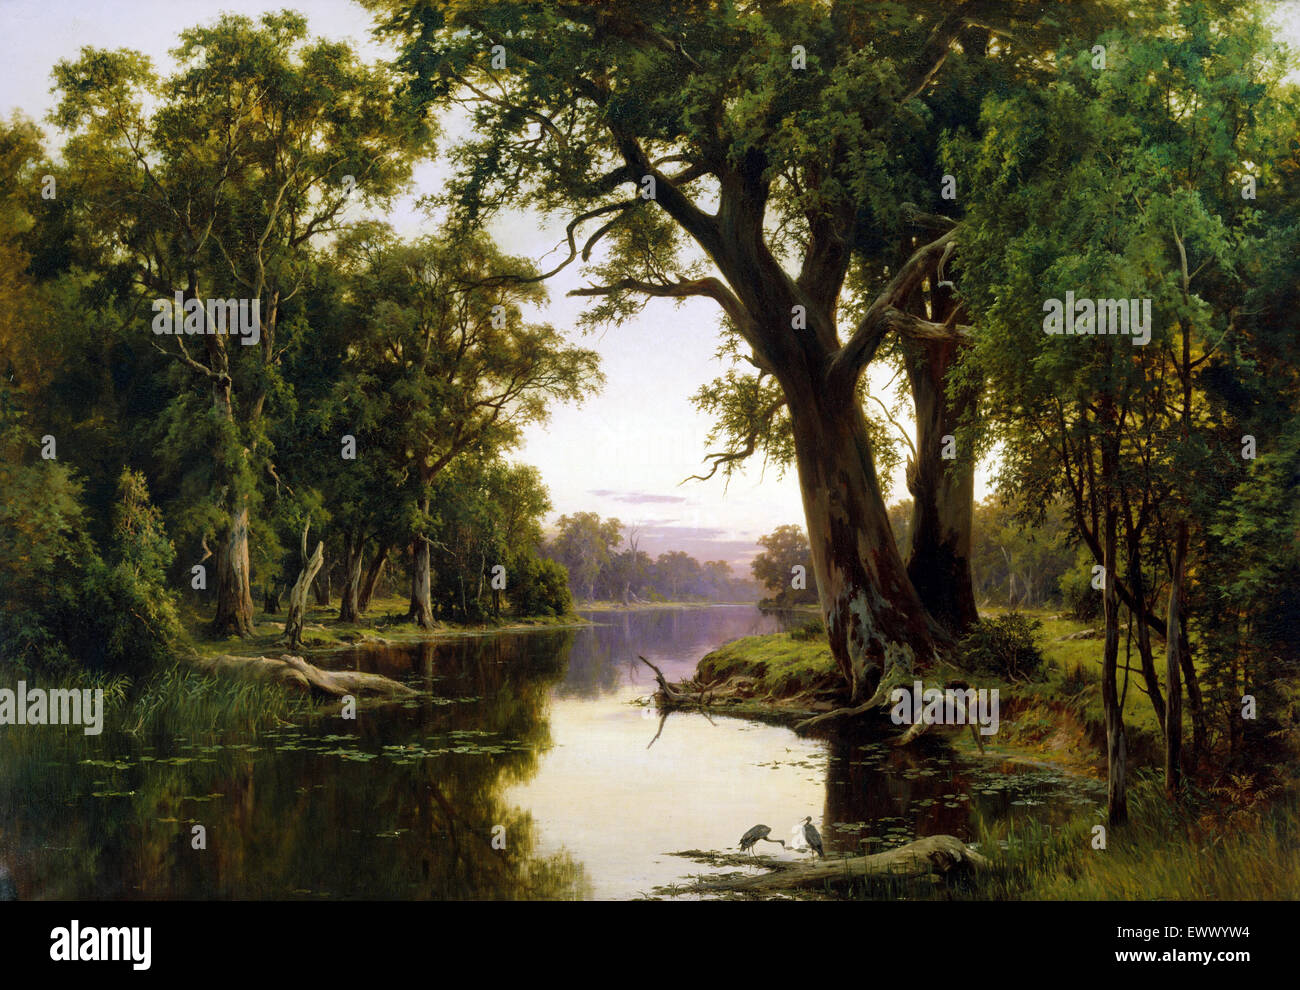 H.J. Johnstone, A Billabong of the Goulburn, Victoria 1894 Oil on canvas. Art Gallery of New South Wales, Australia. - Stock Image